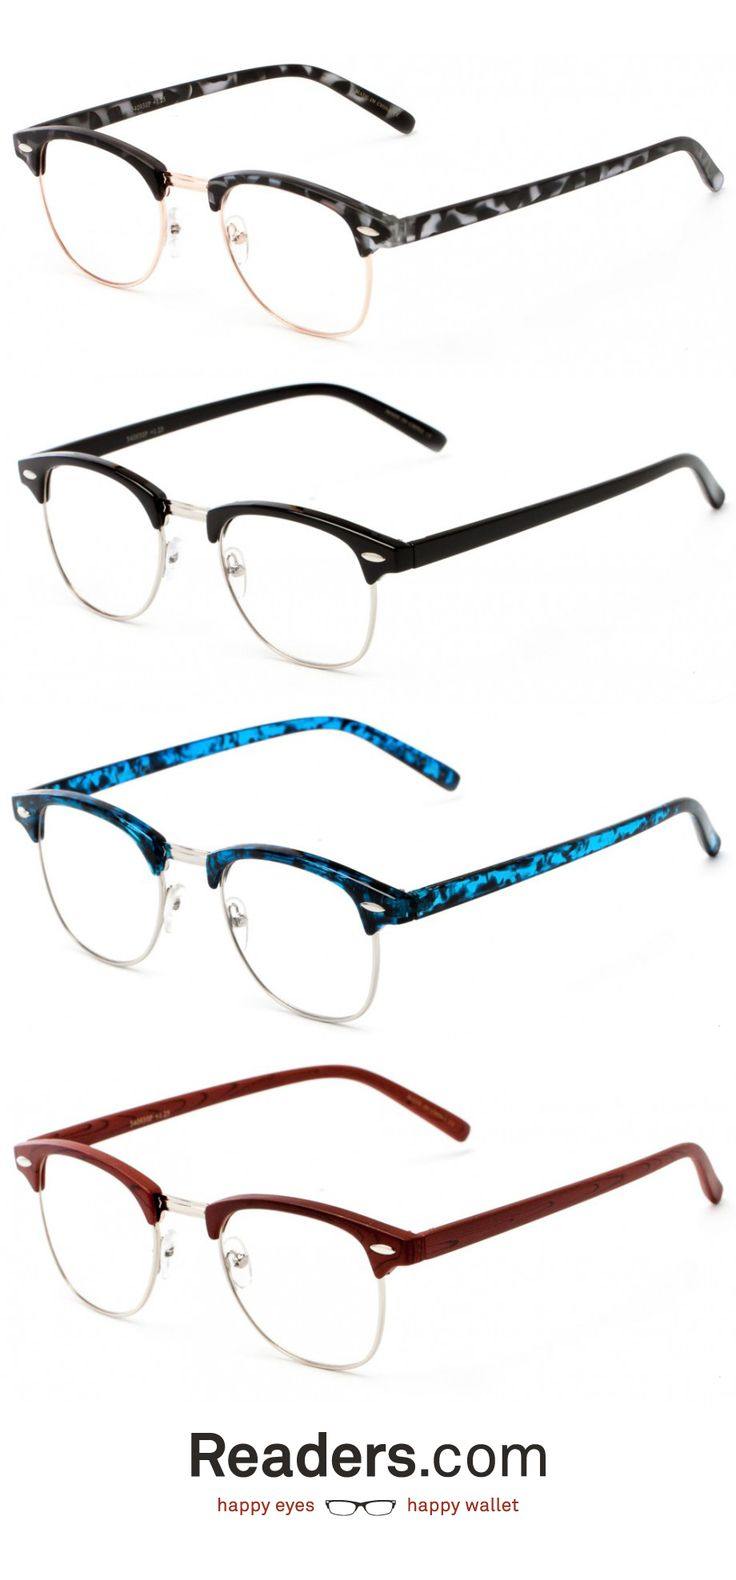 Add a little retro flair to your look with this throwback! The Fig is a metal and plastic browline style that comes in both classic colors and funky tortoises. You can't go wrong with this pair. Readers.com #glasses